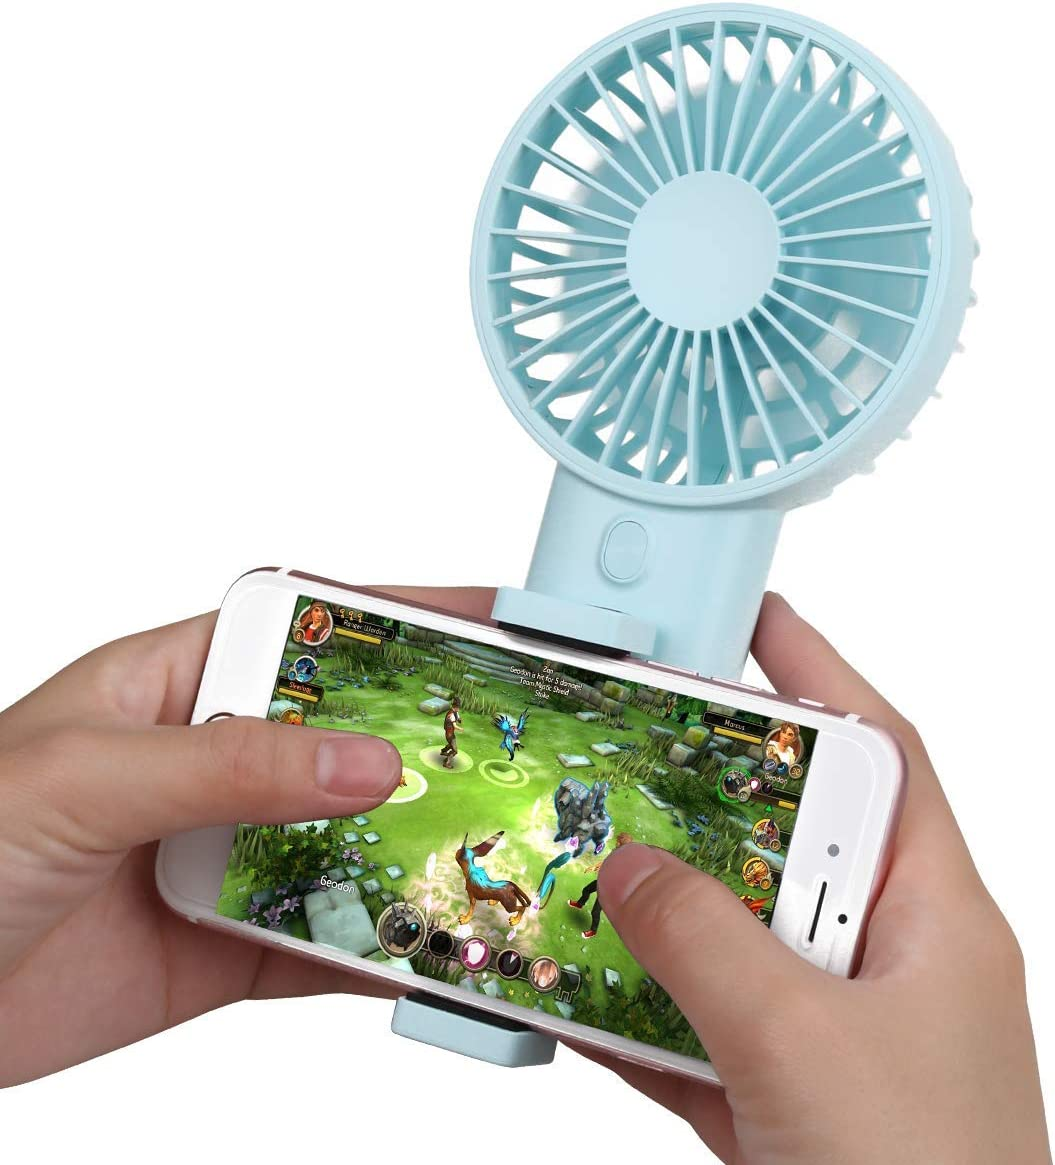 Bomb Mini Handheld Fan with Cell Phone Holder, Personal Portable Stroller Table Fan with USB Rechargeable Battery Operated Cooling Electric Fan for Office Room Outdoor Household Traveling